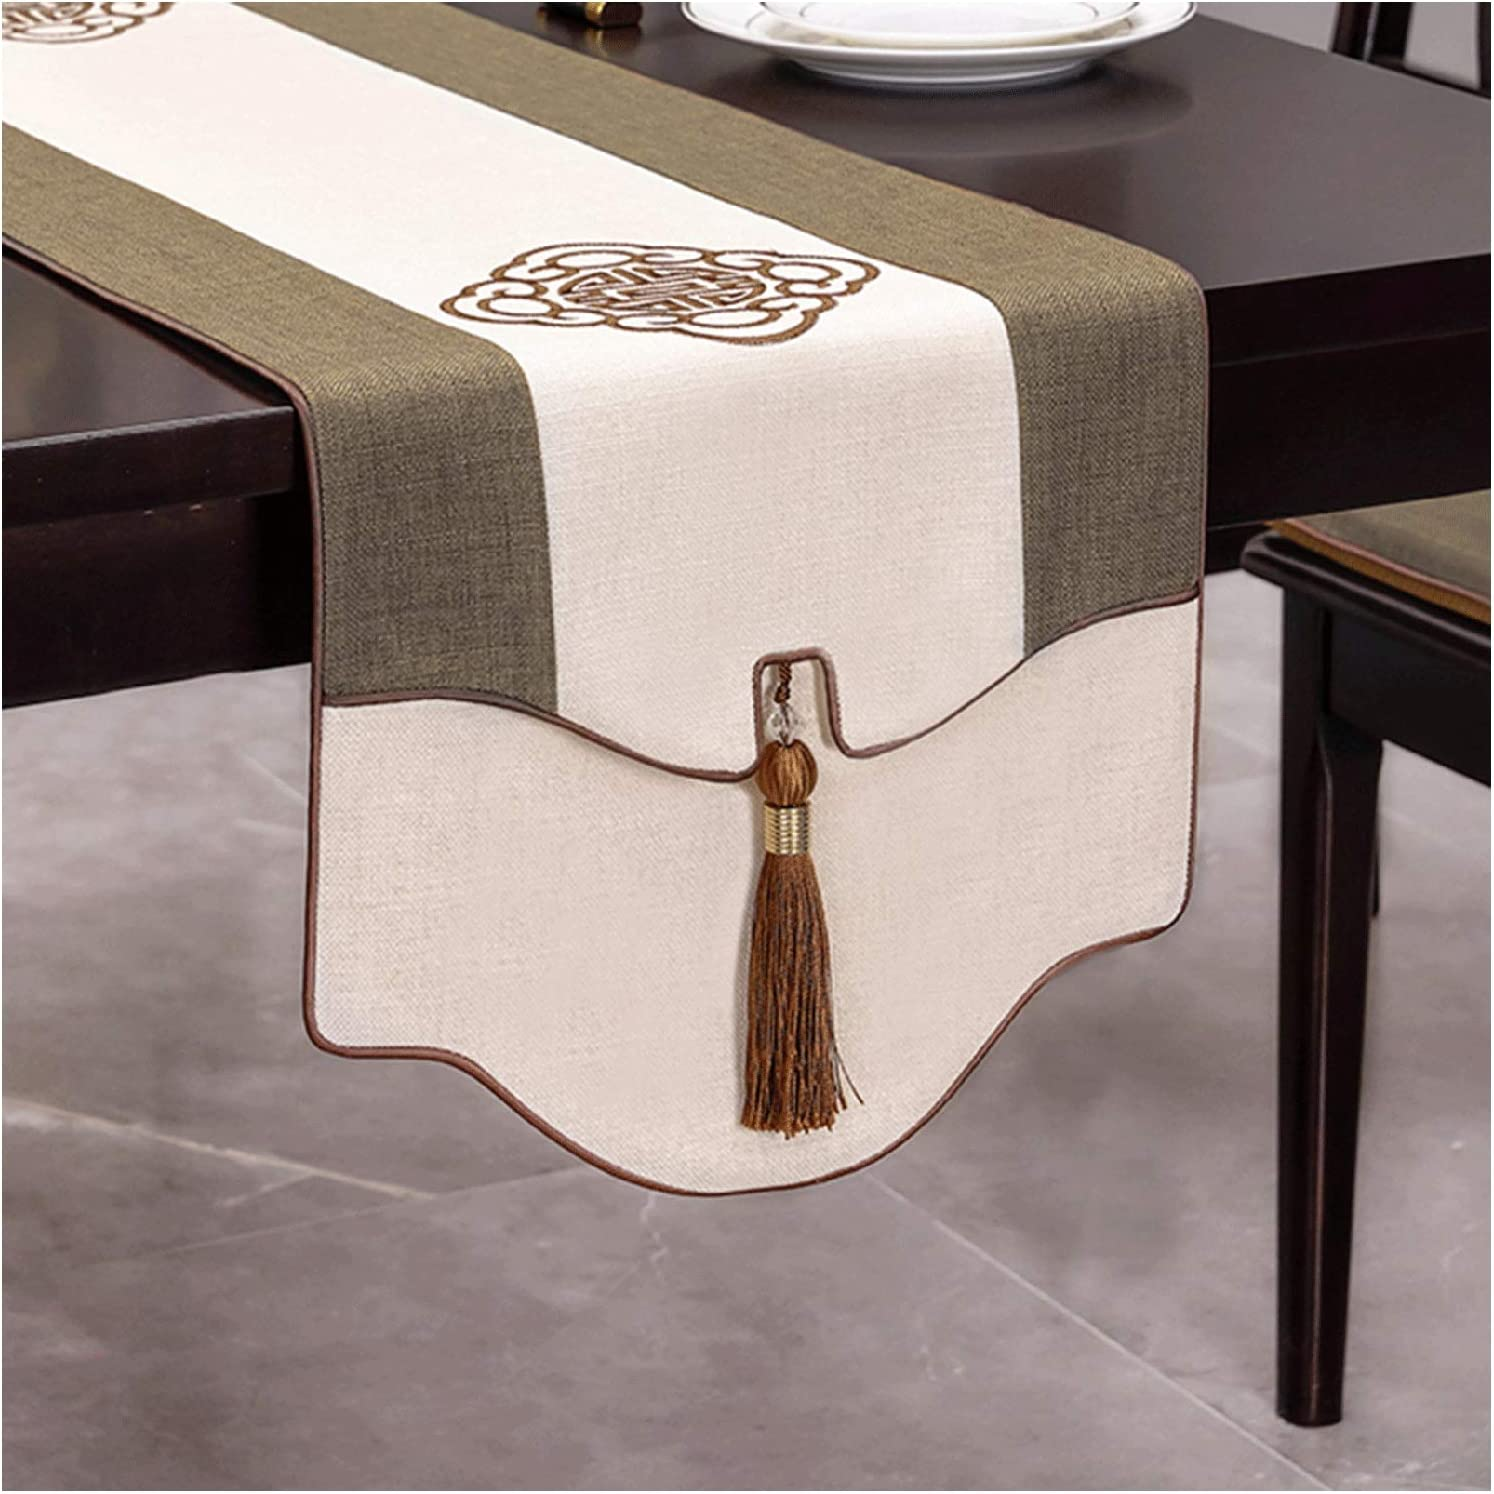 WKDZ Table Max 82% OFF Lowest price challenge Runner Cotton Linen Embroidery Coffee T Cloth and Art